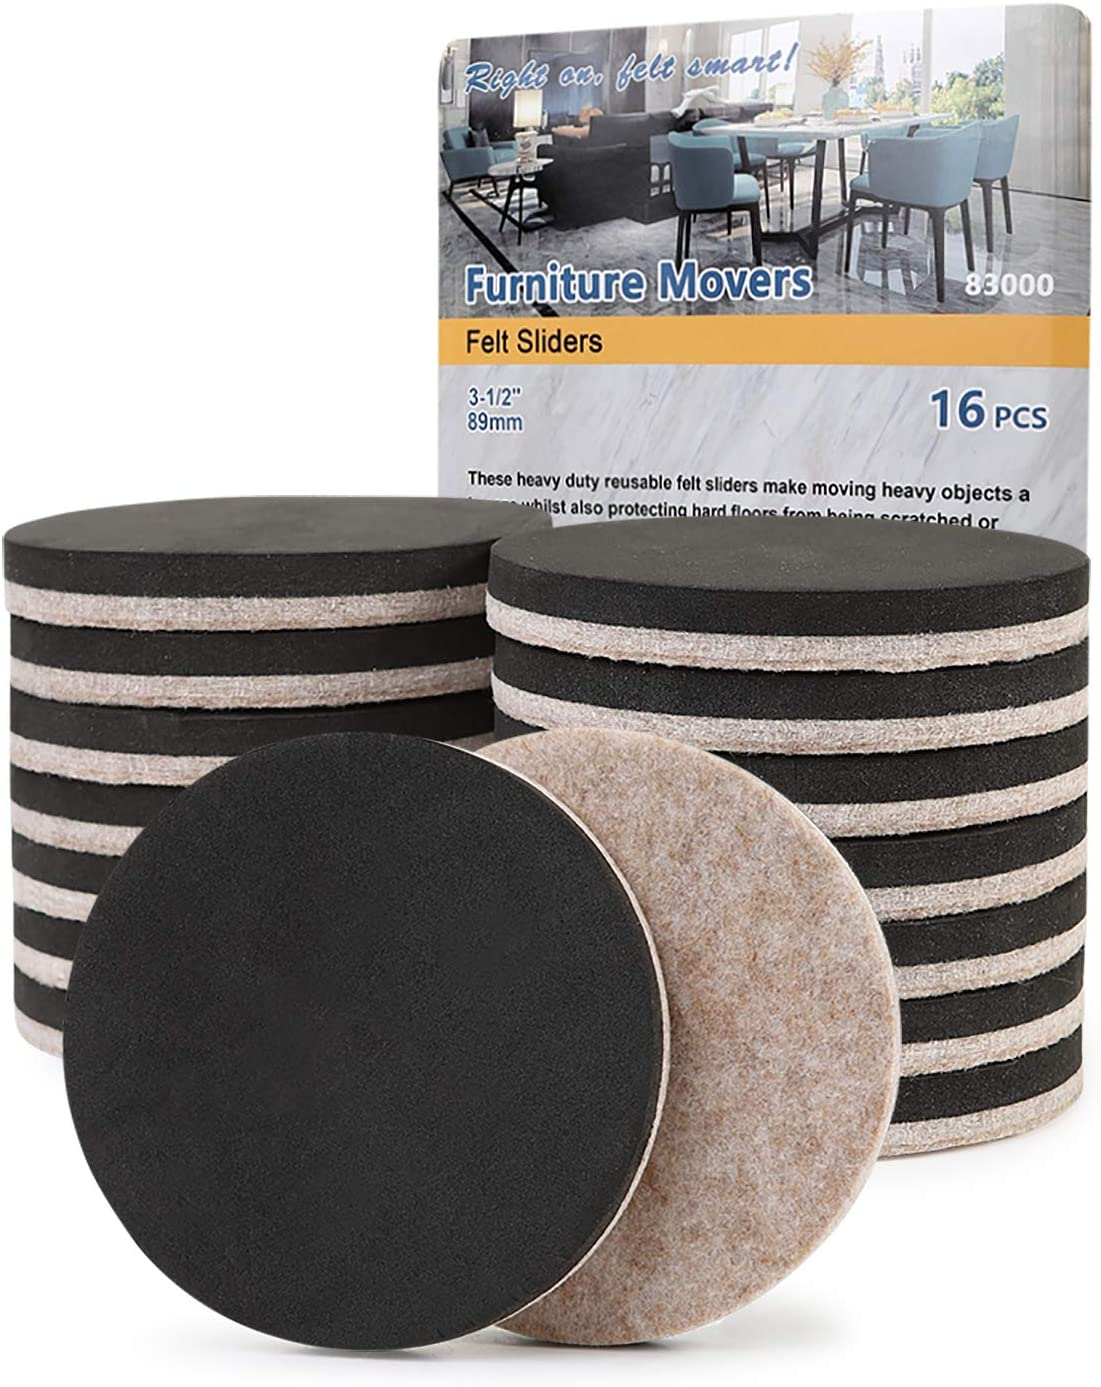 "Felt Furniture Sliders Hardwood Floors 16 PCS 3.5""- Furniture Slider – Heavy Duty Felt Sliders Hard Surfaces - Move Your Furniture Easy & Safely by STAR SMART"